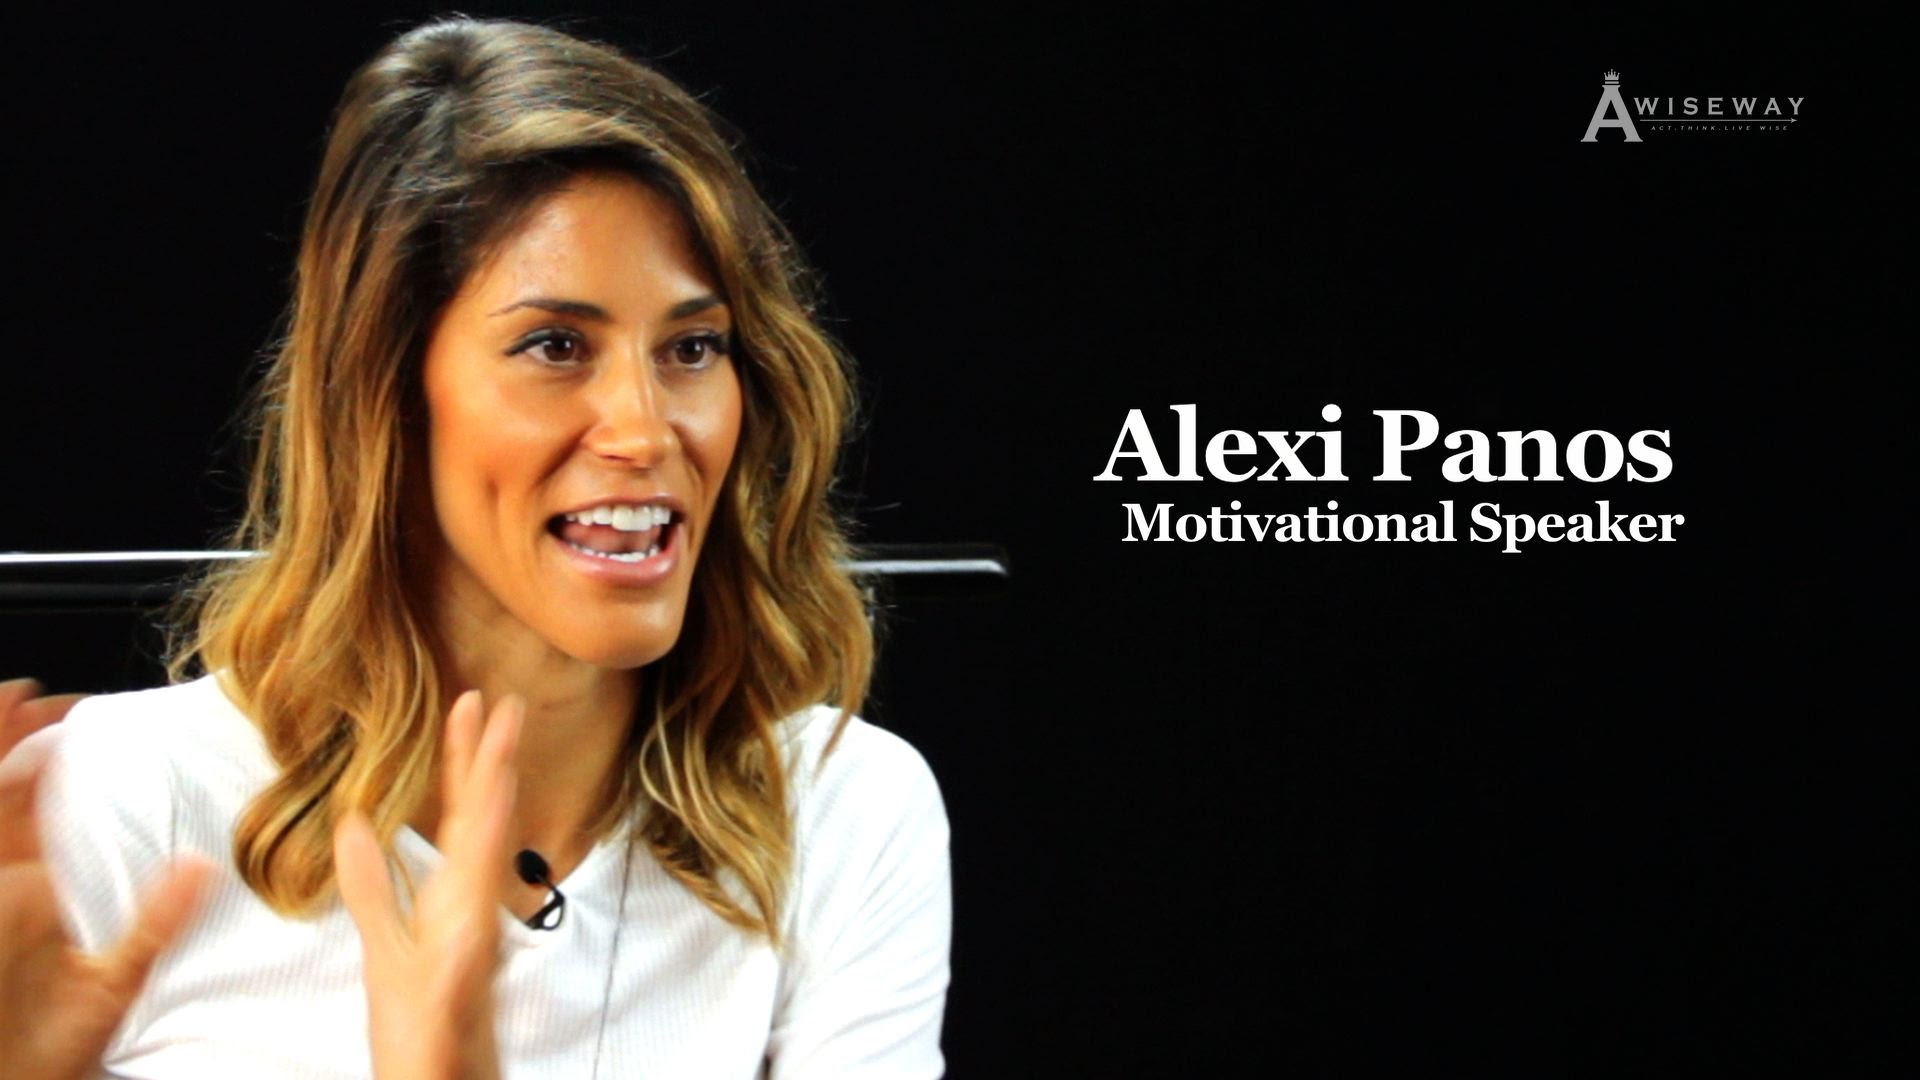 Alexi Panos Explains Why Reading is Important For Personal Growth